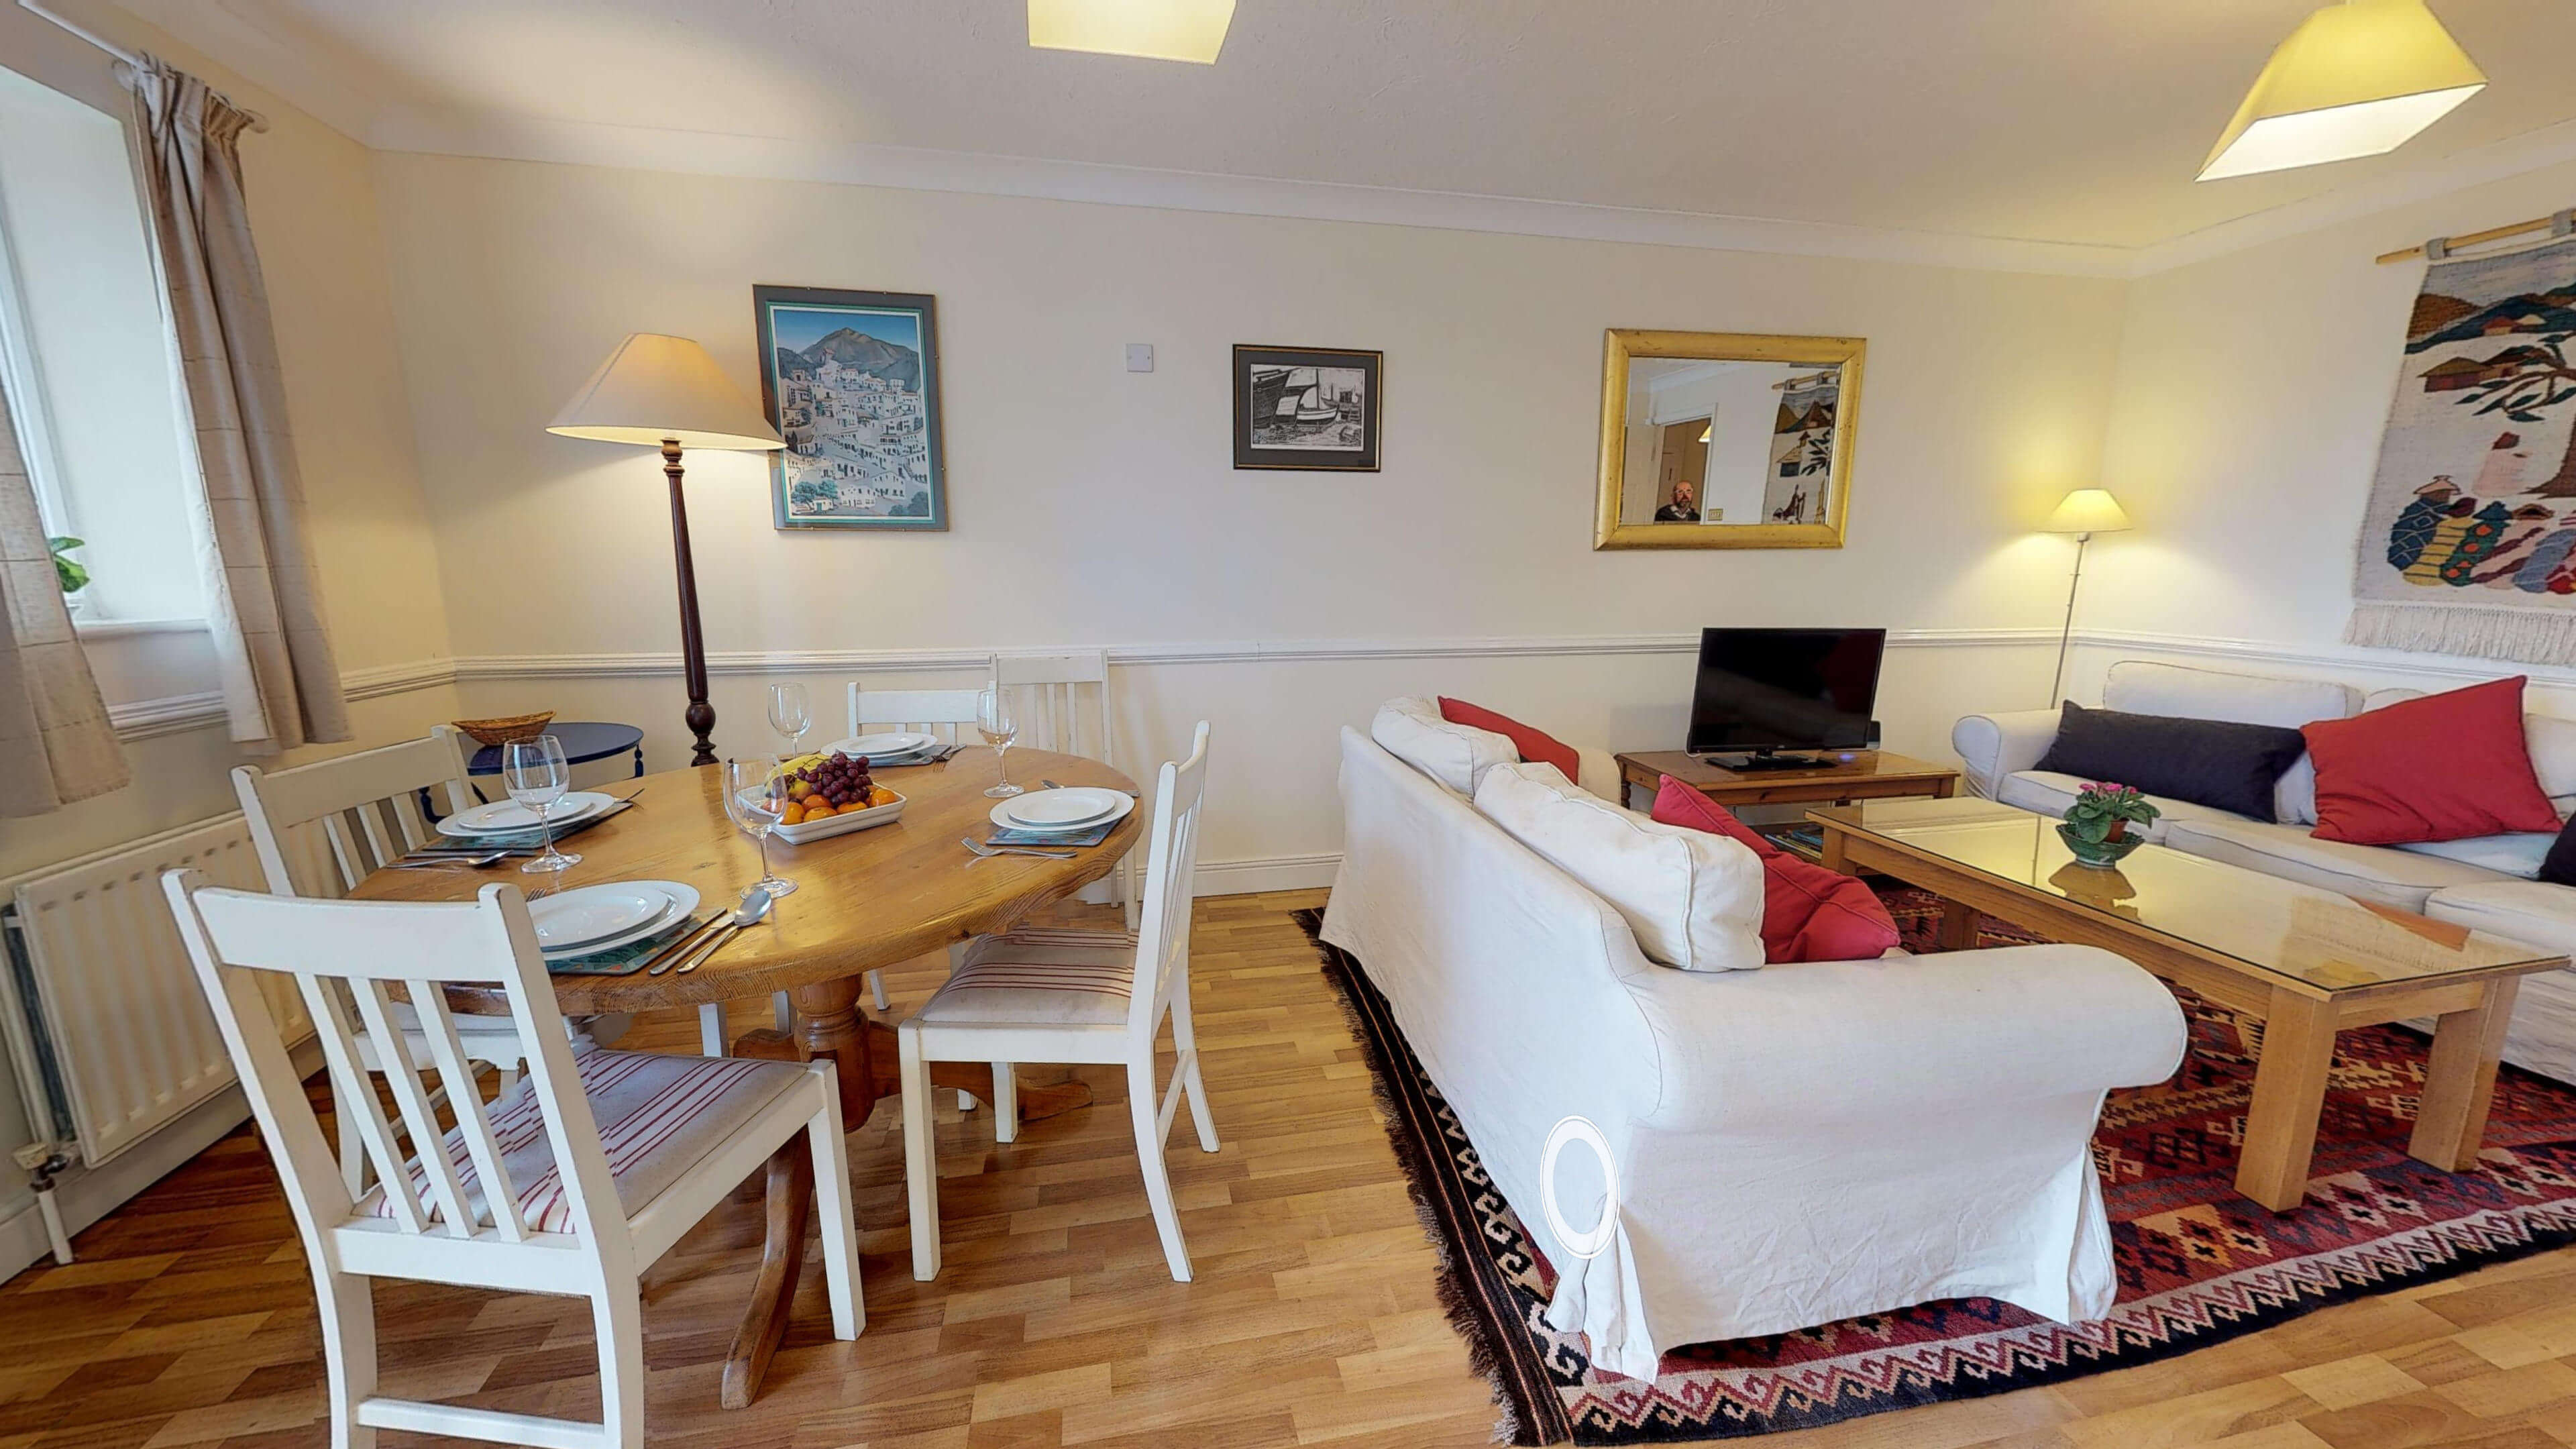 Millbank Oxford City Centre Short Stay Apartment Sleeps 4 Dining Living